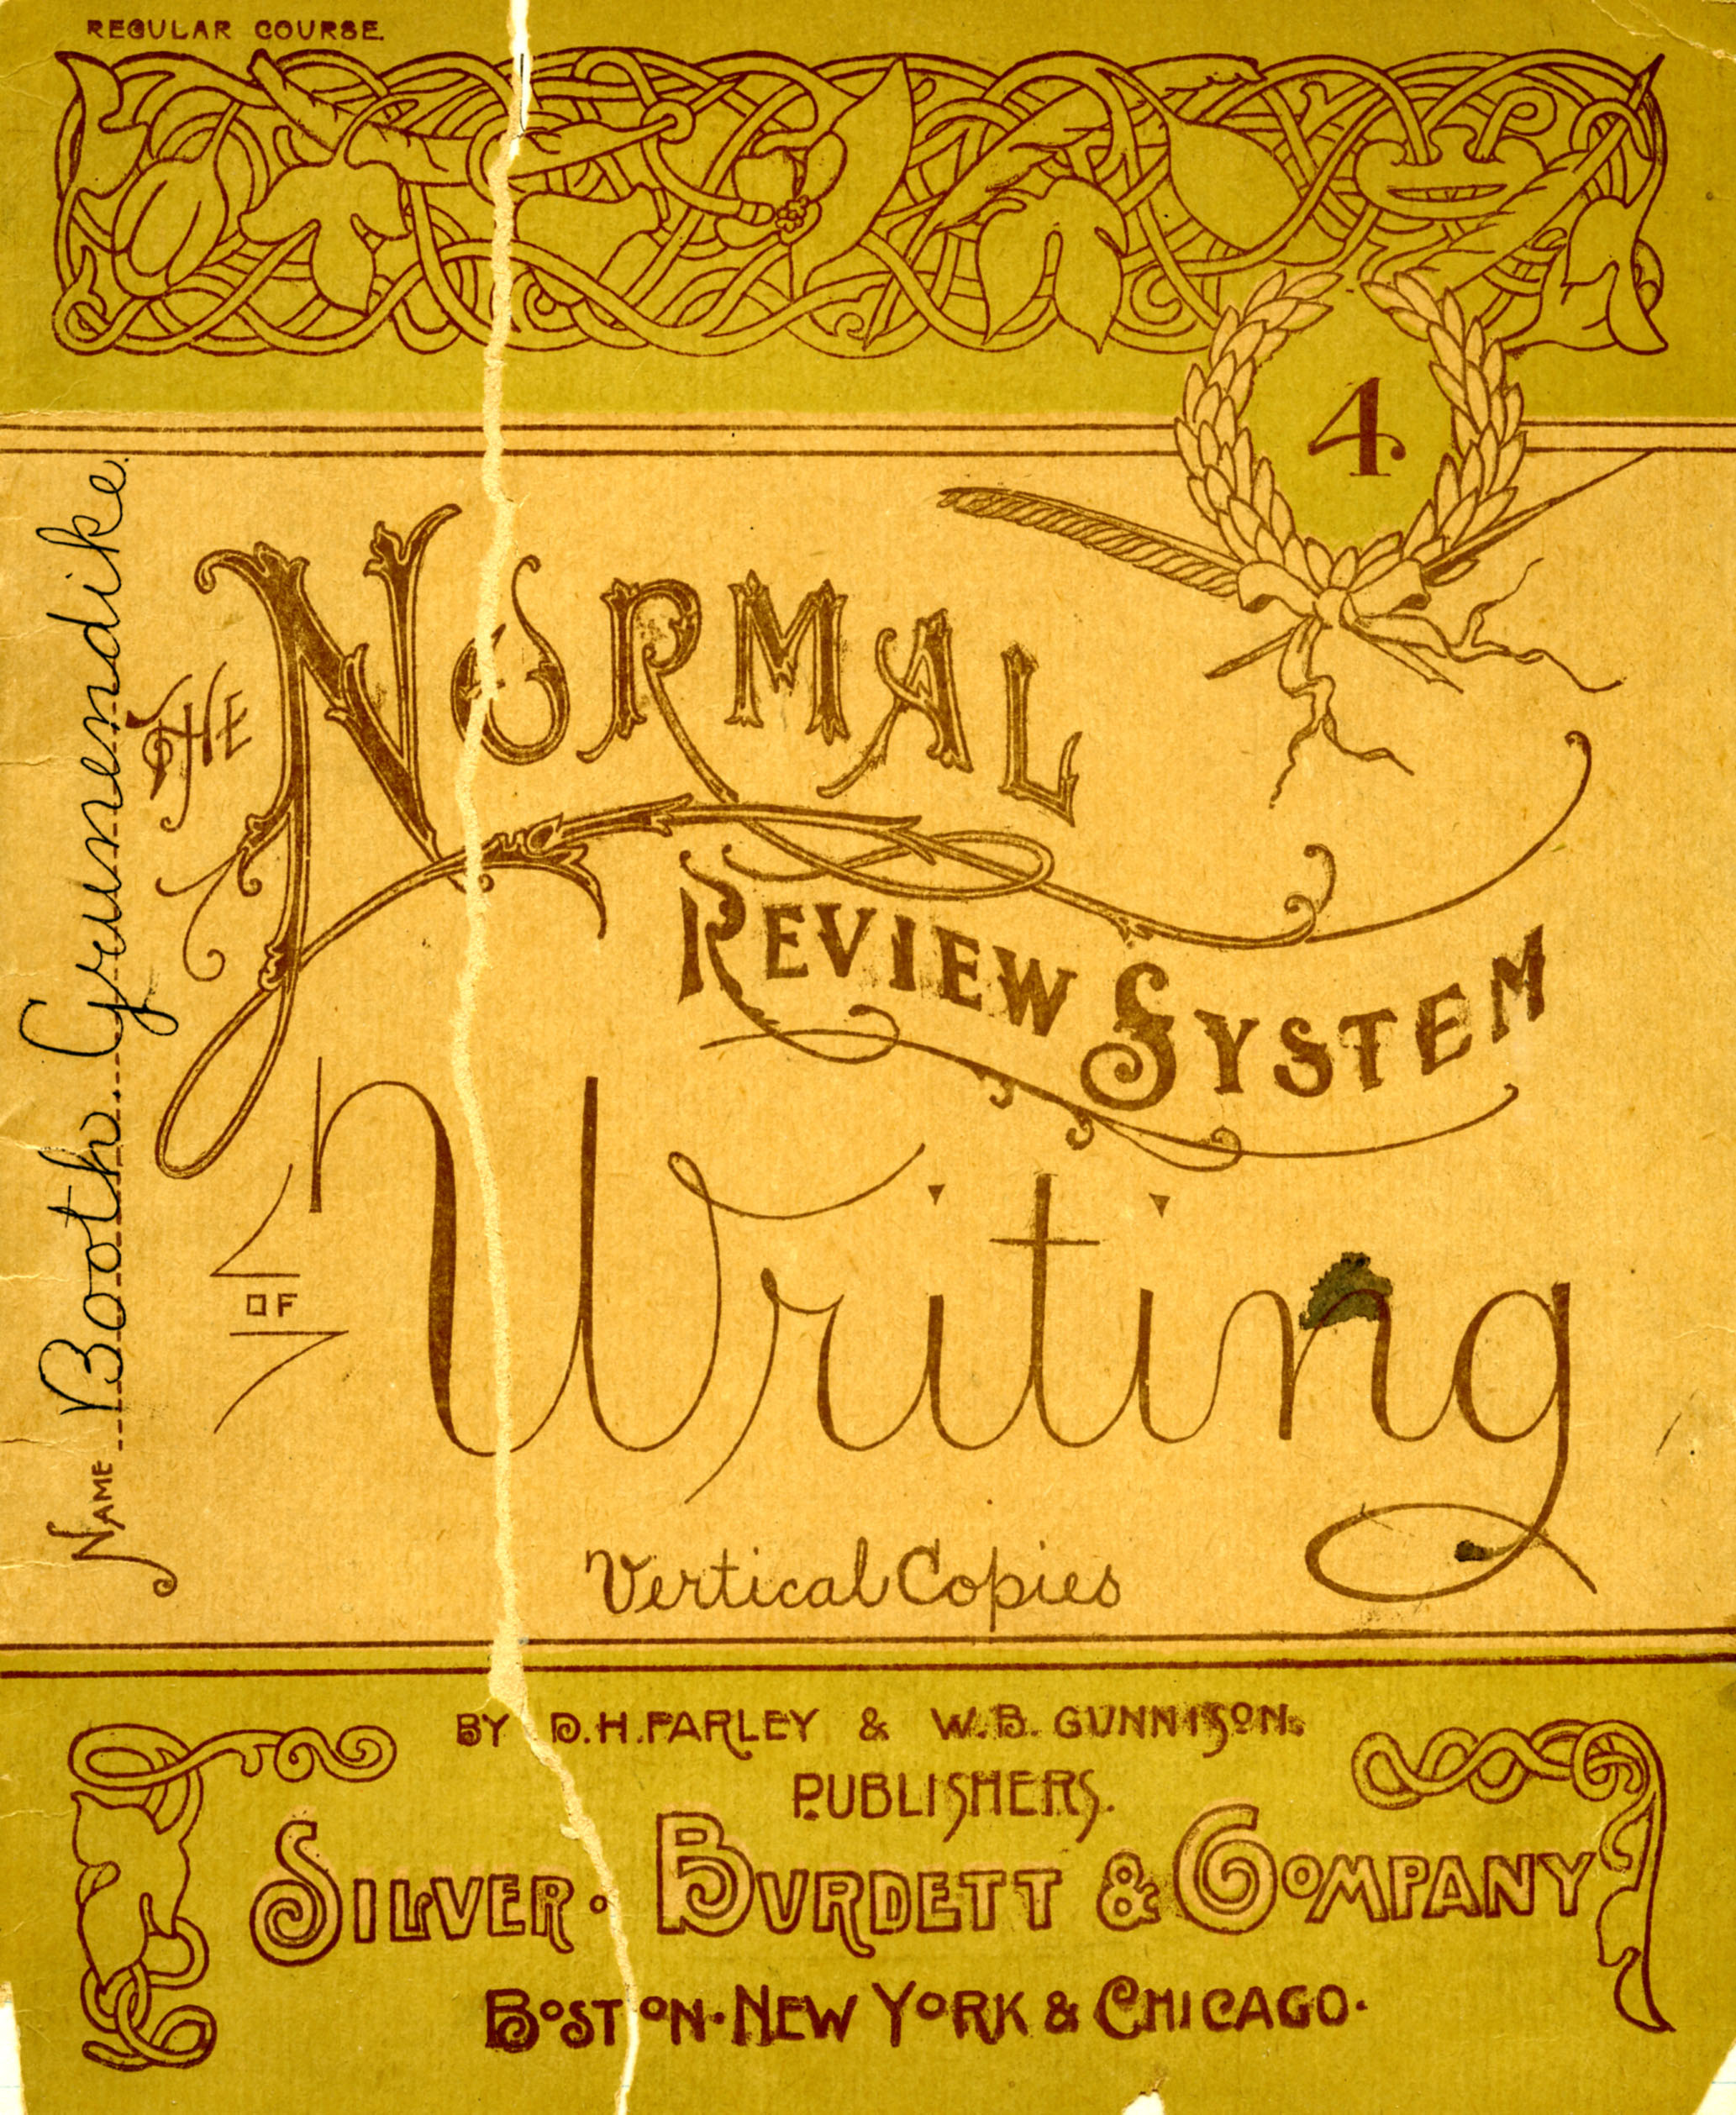 The Normal Review System Of Writing No. 4 · Literacy